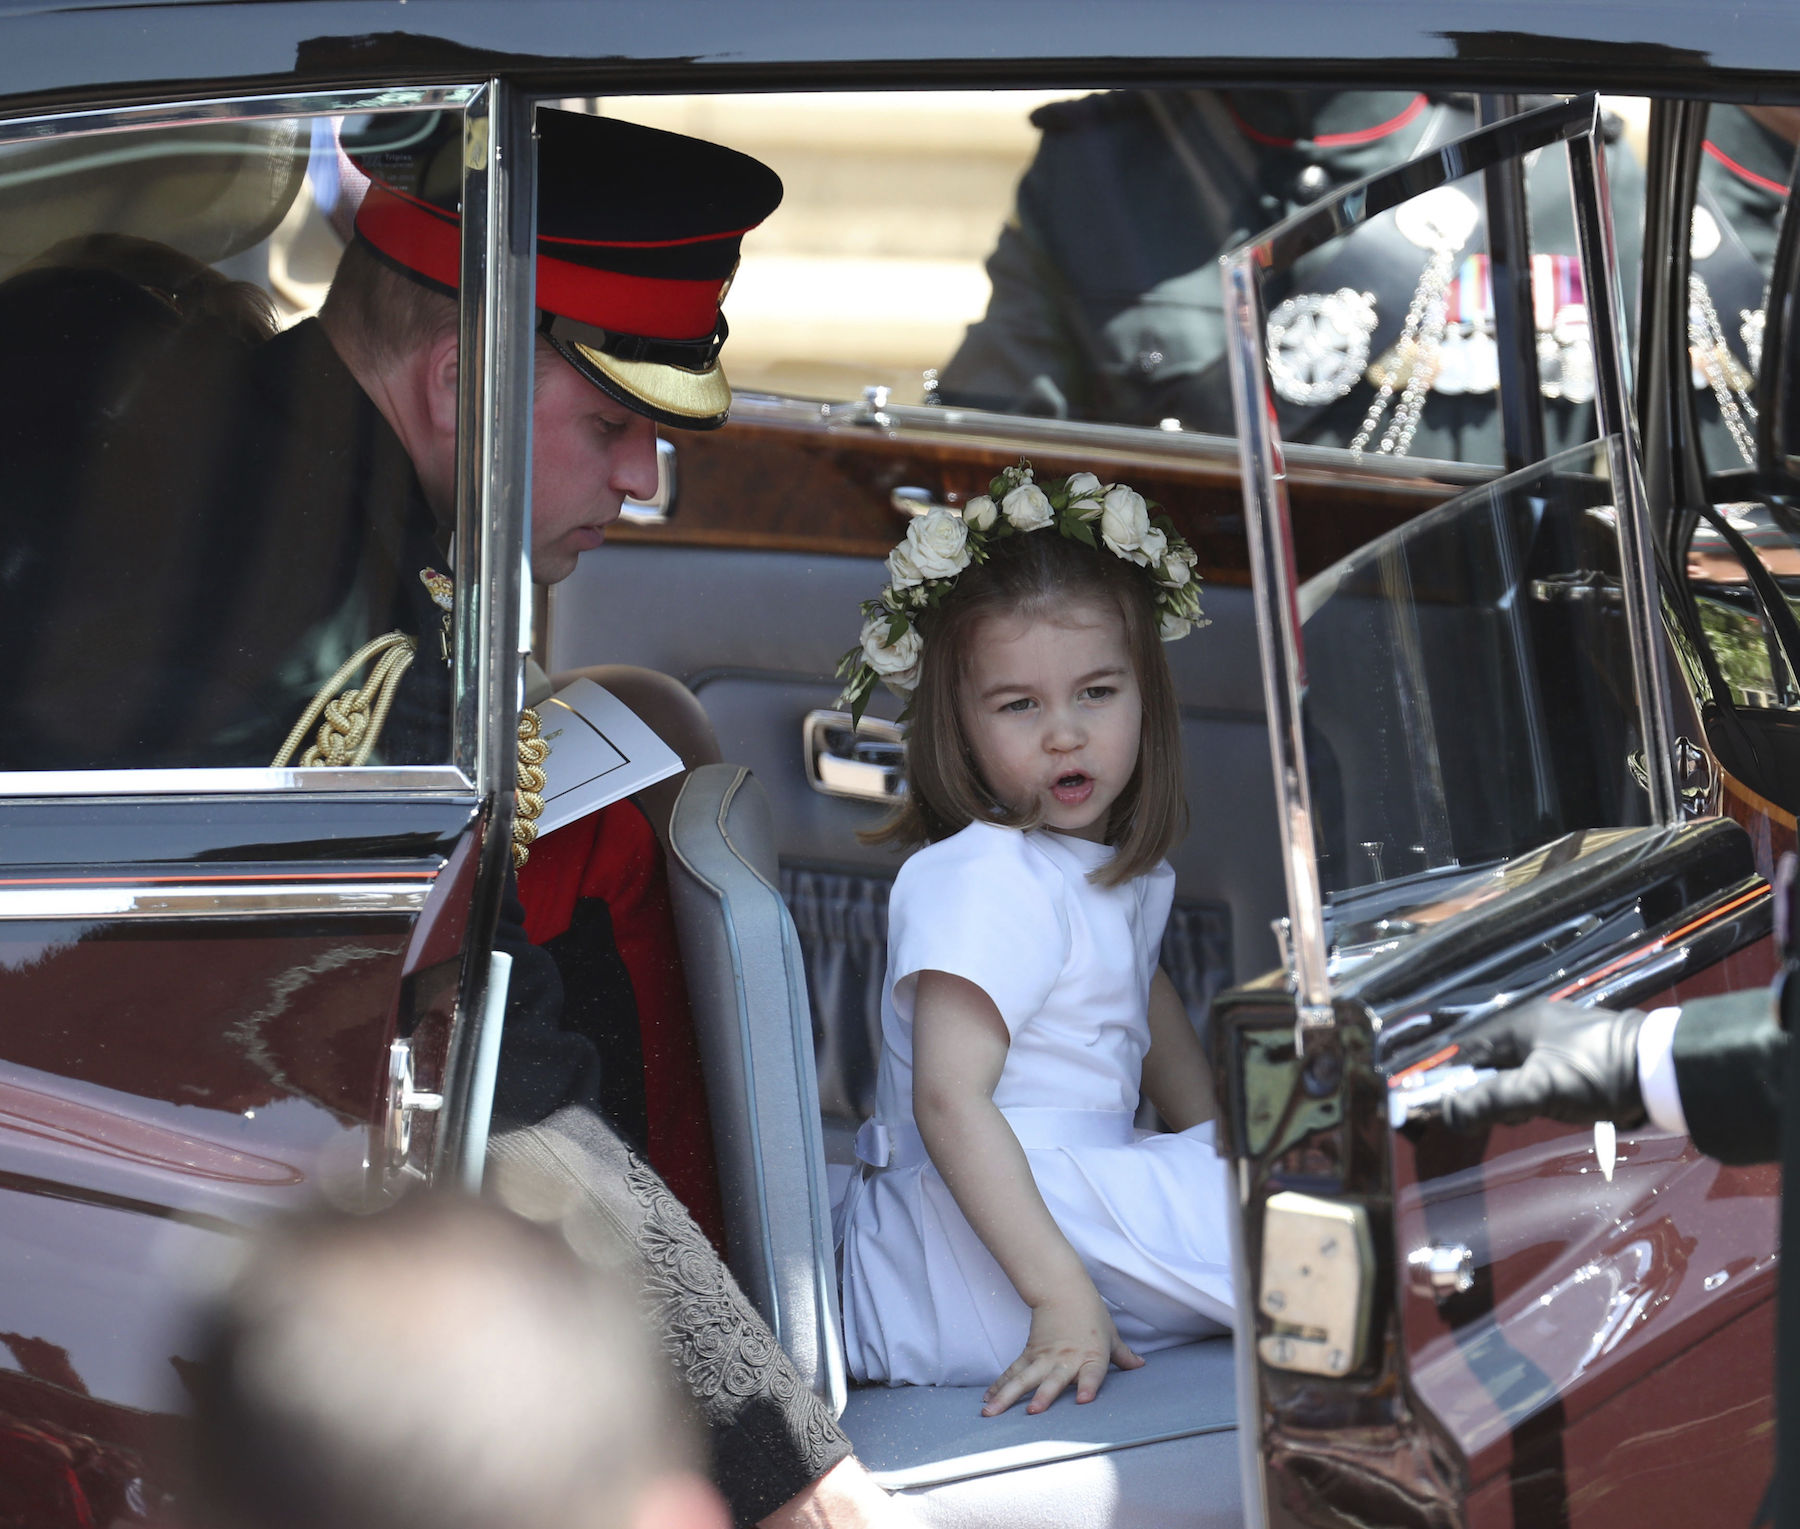 <div class='meta'><div class='origin-logo' data-origin='AP'></div><span class='caption-text' data-credit='Jane Barlow/pool photo via AP'>Princess Charlotte and Britain's Prince William leave after the wedding ceremony of Prince Harry and Meghan Markle at St. George's Chapel in Windsor Castle.</span></div>